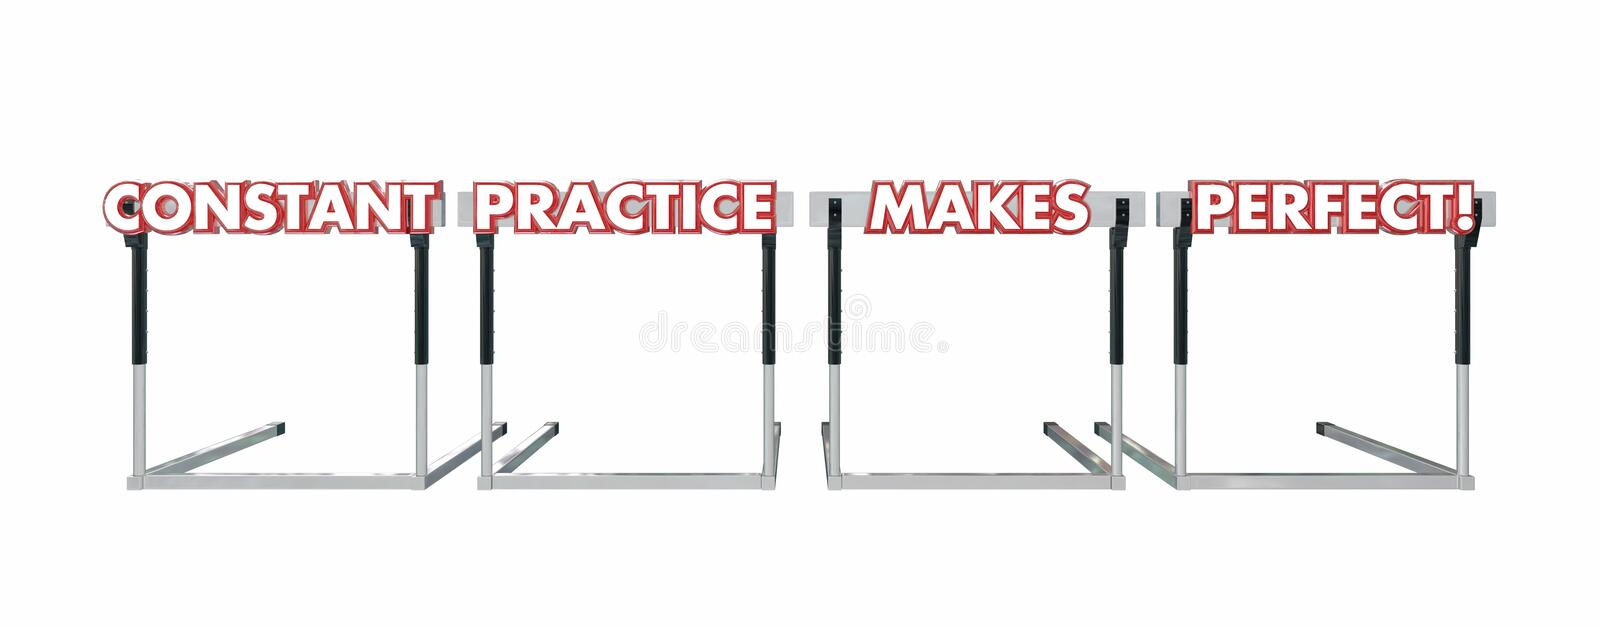 Constant Practice Makes Perfect Jumping Over Hurdles stock illustration